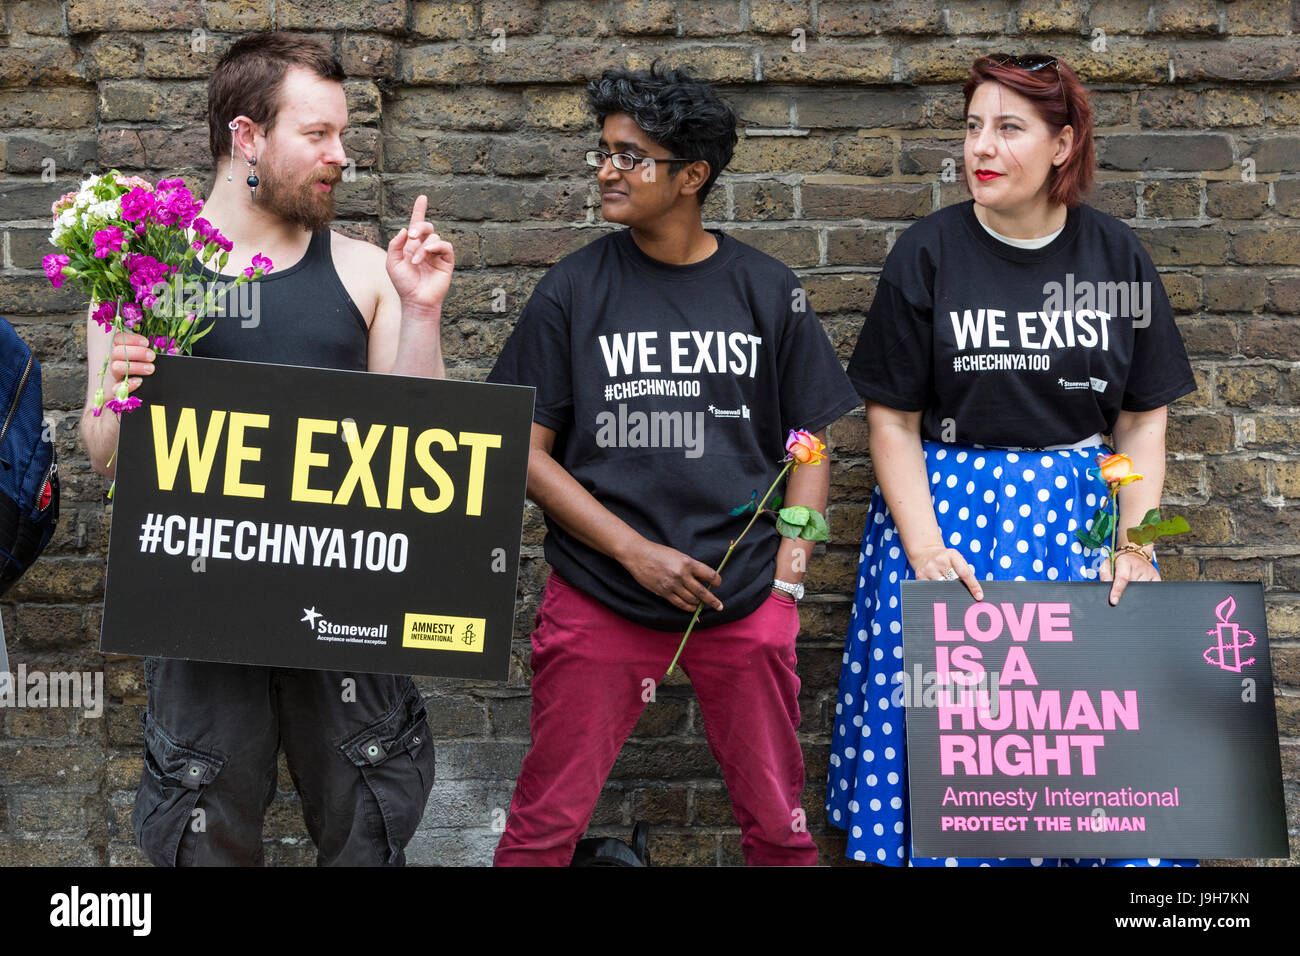 London, UK. 2nd June, 2017. Amnesty International actvists stage a 'We Exist' protest outside the Russian - Stock Image